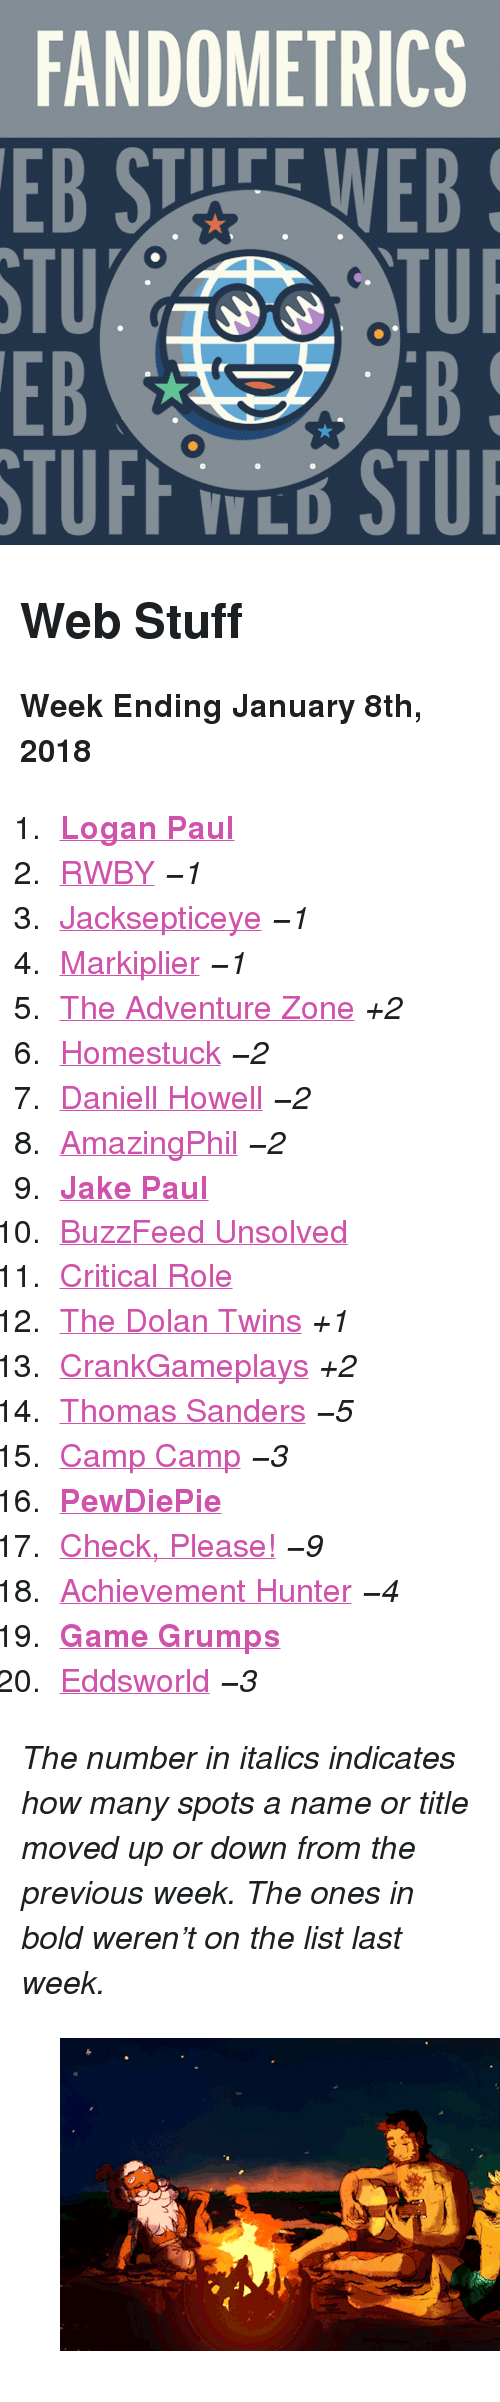 "Critical Role: FANDOMETRICS  STU  EB  TUFF TLO STU <h2>Web Stuff</h2><p><b>Week Ending January 8th, 2018</b></p><ol><li><a href=""http://www.tumblr.com/search/logan%20paul""><b>Logan Paul</b></a></li>  <li><a href=""http://www.tumblr.com/search/rwby"">RWBY</a> <i><i>−1</i></i></li>  <li><a href=""http://www.tumblr.com/search/jacksepticeye"">Jacksepticeye</a> <i><i>−1</i></i></li>  <li><a href=""http://www.tumblr.com/search/markiplier"">Markiplier</a> <i><i>−1</i></i></li>  <li><a href=""http://www.tumblr.com/search/the%20adventure%20zone"">The Adventure Zone</a> <i>+2</i></li>  <li><a href=""http://www.tumblr.com/search/homestuck"">Homestuck</a> <i><i>−2</i></i></li>  <li><a href=""http://www.tumblr.com/search/daniel%20howell"">Daniell Howell</a> <i><i>−2</i></i></li>  <li><a href=""http://www.tumblr.com/search/amazingphil"">AmazingPhil</a> <i><i>−2</i></i></li>  <li><a href=""http://www.tumblr.com/search/jake%20paul""><b>Jake Paul</b></a></li>  <li><a href=""http://www.tumblr.com/search/buzzfeed%20unsolved"">BuzzFeed Unsolved</a></li>  <li><a href=""http://www.tumblr.com/search/critical%20role"">Critical Role</a></li>  <li><a href=""http://www.tumblr.com/search/dolan%20twins"">The Dolan Twins</a> <i>+1</i></li>  <li><a href=""http://www.tumblr.com/search/crankgameplays"">CrankGameplays</a> <i>+2</i></li>  <li><a href=""http://www.tumblr.com/search/thomas%20sanders"">Thomas Sanders</a> <i><i>−5</i></i></li>  <li><a href=""http://www.tumblr.com/search/camp%20camp"">Camp Camp</a> <i><i>−3</i></i></li>  <li><a href=""http://www.tumblr.com/search/pewdiepie""><b>PewDiePie</b></a></li>  <li><a href=""http://www.tumblr.com/search/omgcheckplease"">Check, Please!</a> <i><i>−9</i></i></li>  <li><a href=""http://www.tumblr.com/search/achievement%20hunter"">Achievement Hunter</a> <i><i>−4</i></i></li>  <li><a href=""http://www.tumblr.com/search/game%20grumps""><b>Game Grumps</b></a></li>  <li><a href=""http://www.tumblr.com/search/eddsworld"">Eddsworld</a> <i><i>−3</i></i></li></ol><p><i>The number in italics indicates how many spots a name or title moved up or down from the previous week. The ones in bold weren't on the list last week.</i></p><figure class=""tmblr-full"" data-orig-height=""313"" data-orig-width=""500"" data-tumblr-attribution=""artbychromo:O8FUAsVIof-70jX7IJNrjg:Z6NW5w2OSeHXp""><img src=""https://78.media.tumblr.com/e464721e6e3e431d345733f9c8dec893/tumblr_ou0ucvE7Je1ro5gino1_r2_500.gif"" data-orig-height=""313"" data-orig-width=""500""/></figure>"